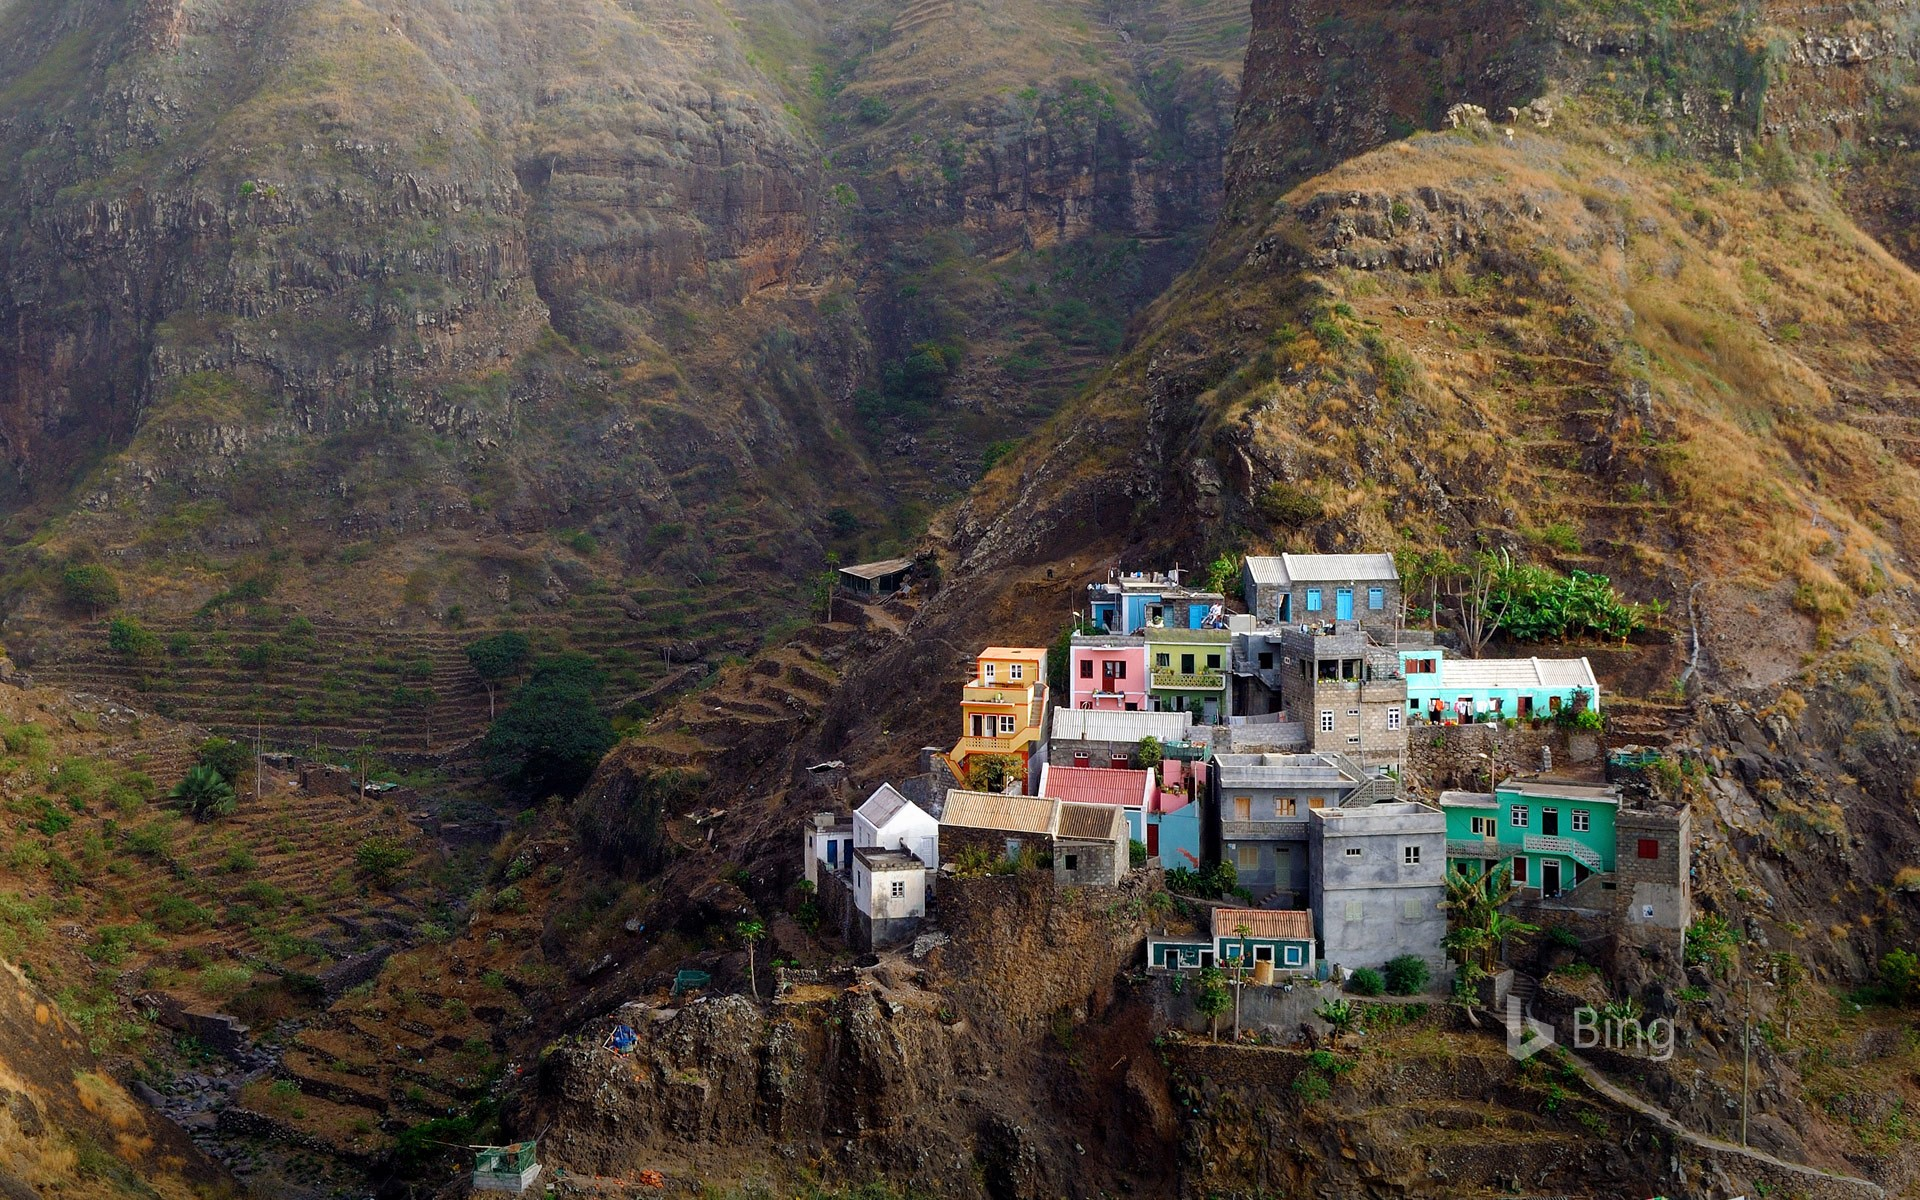 Village of Fontainhas on Santo Antão Island, the Republic of Cabo Verde